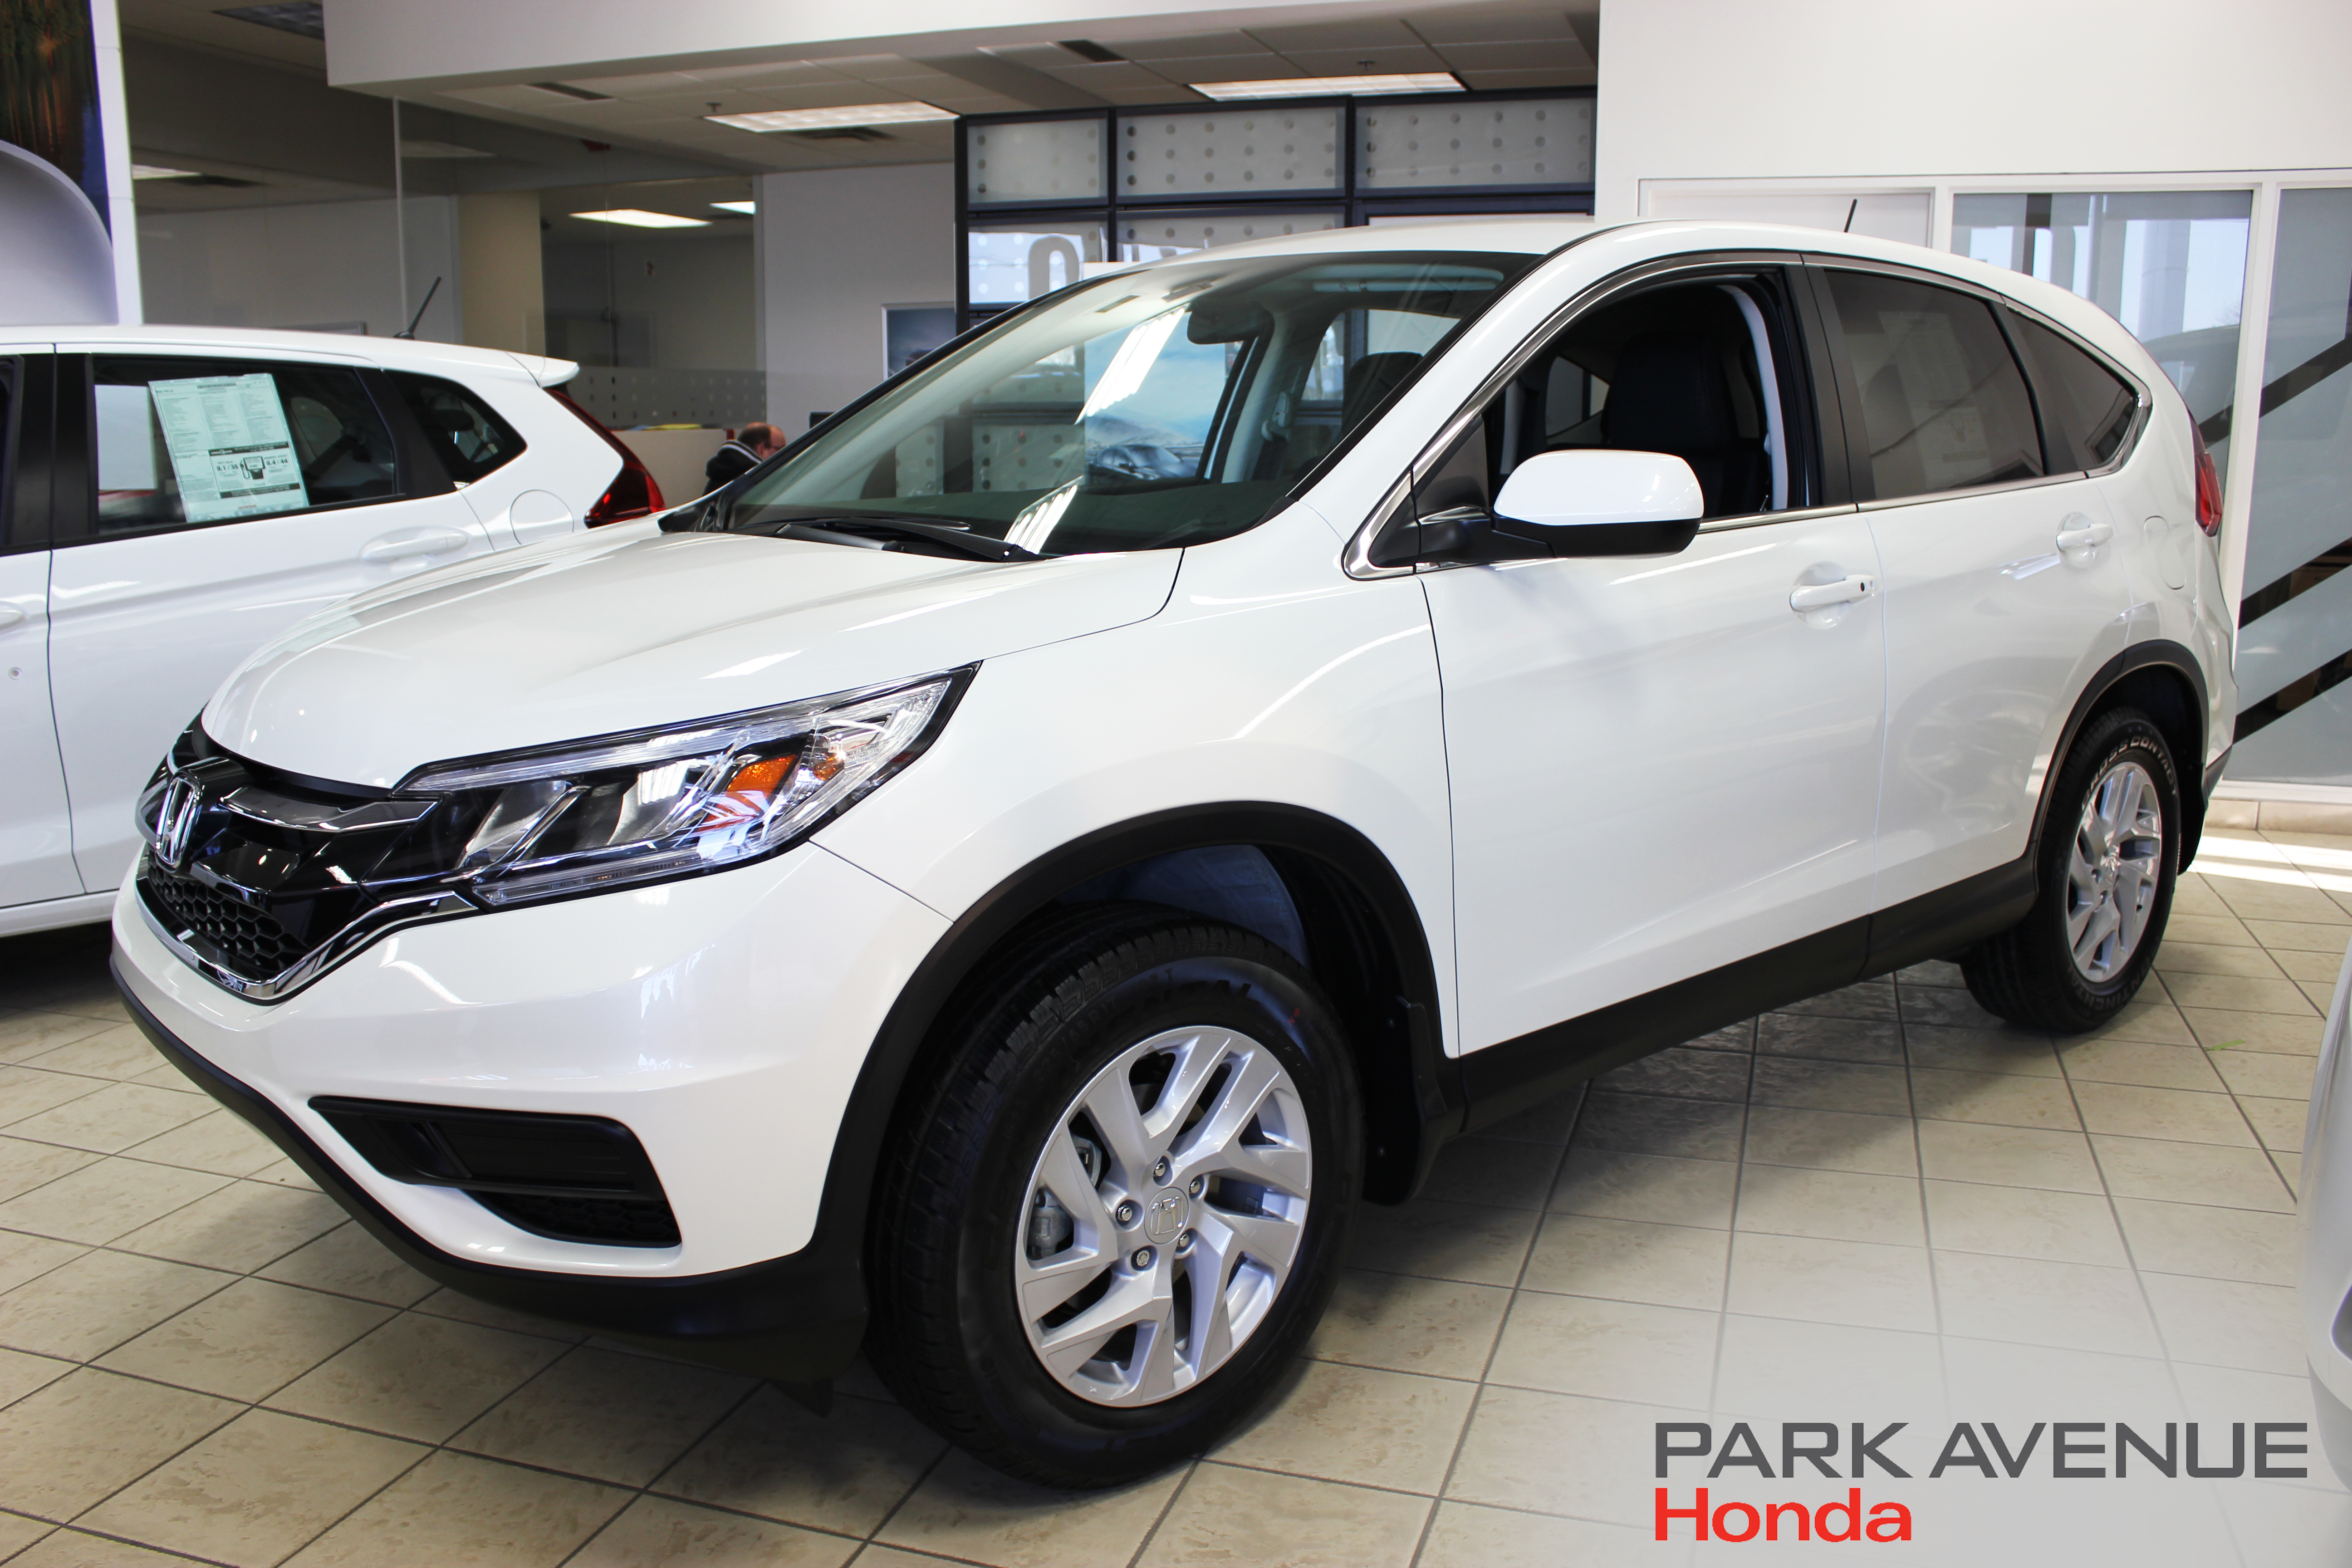 cr gallery honda photo facelift announced pricing news specifications crv v